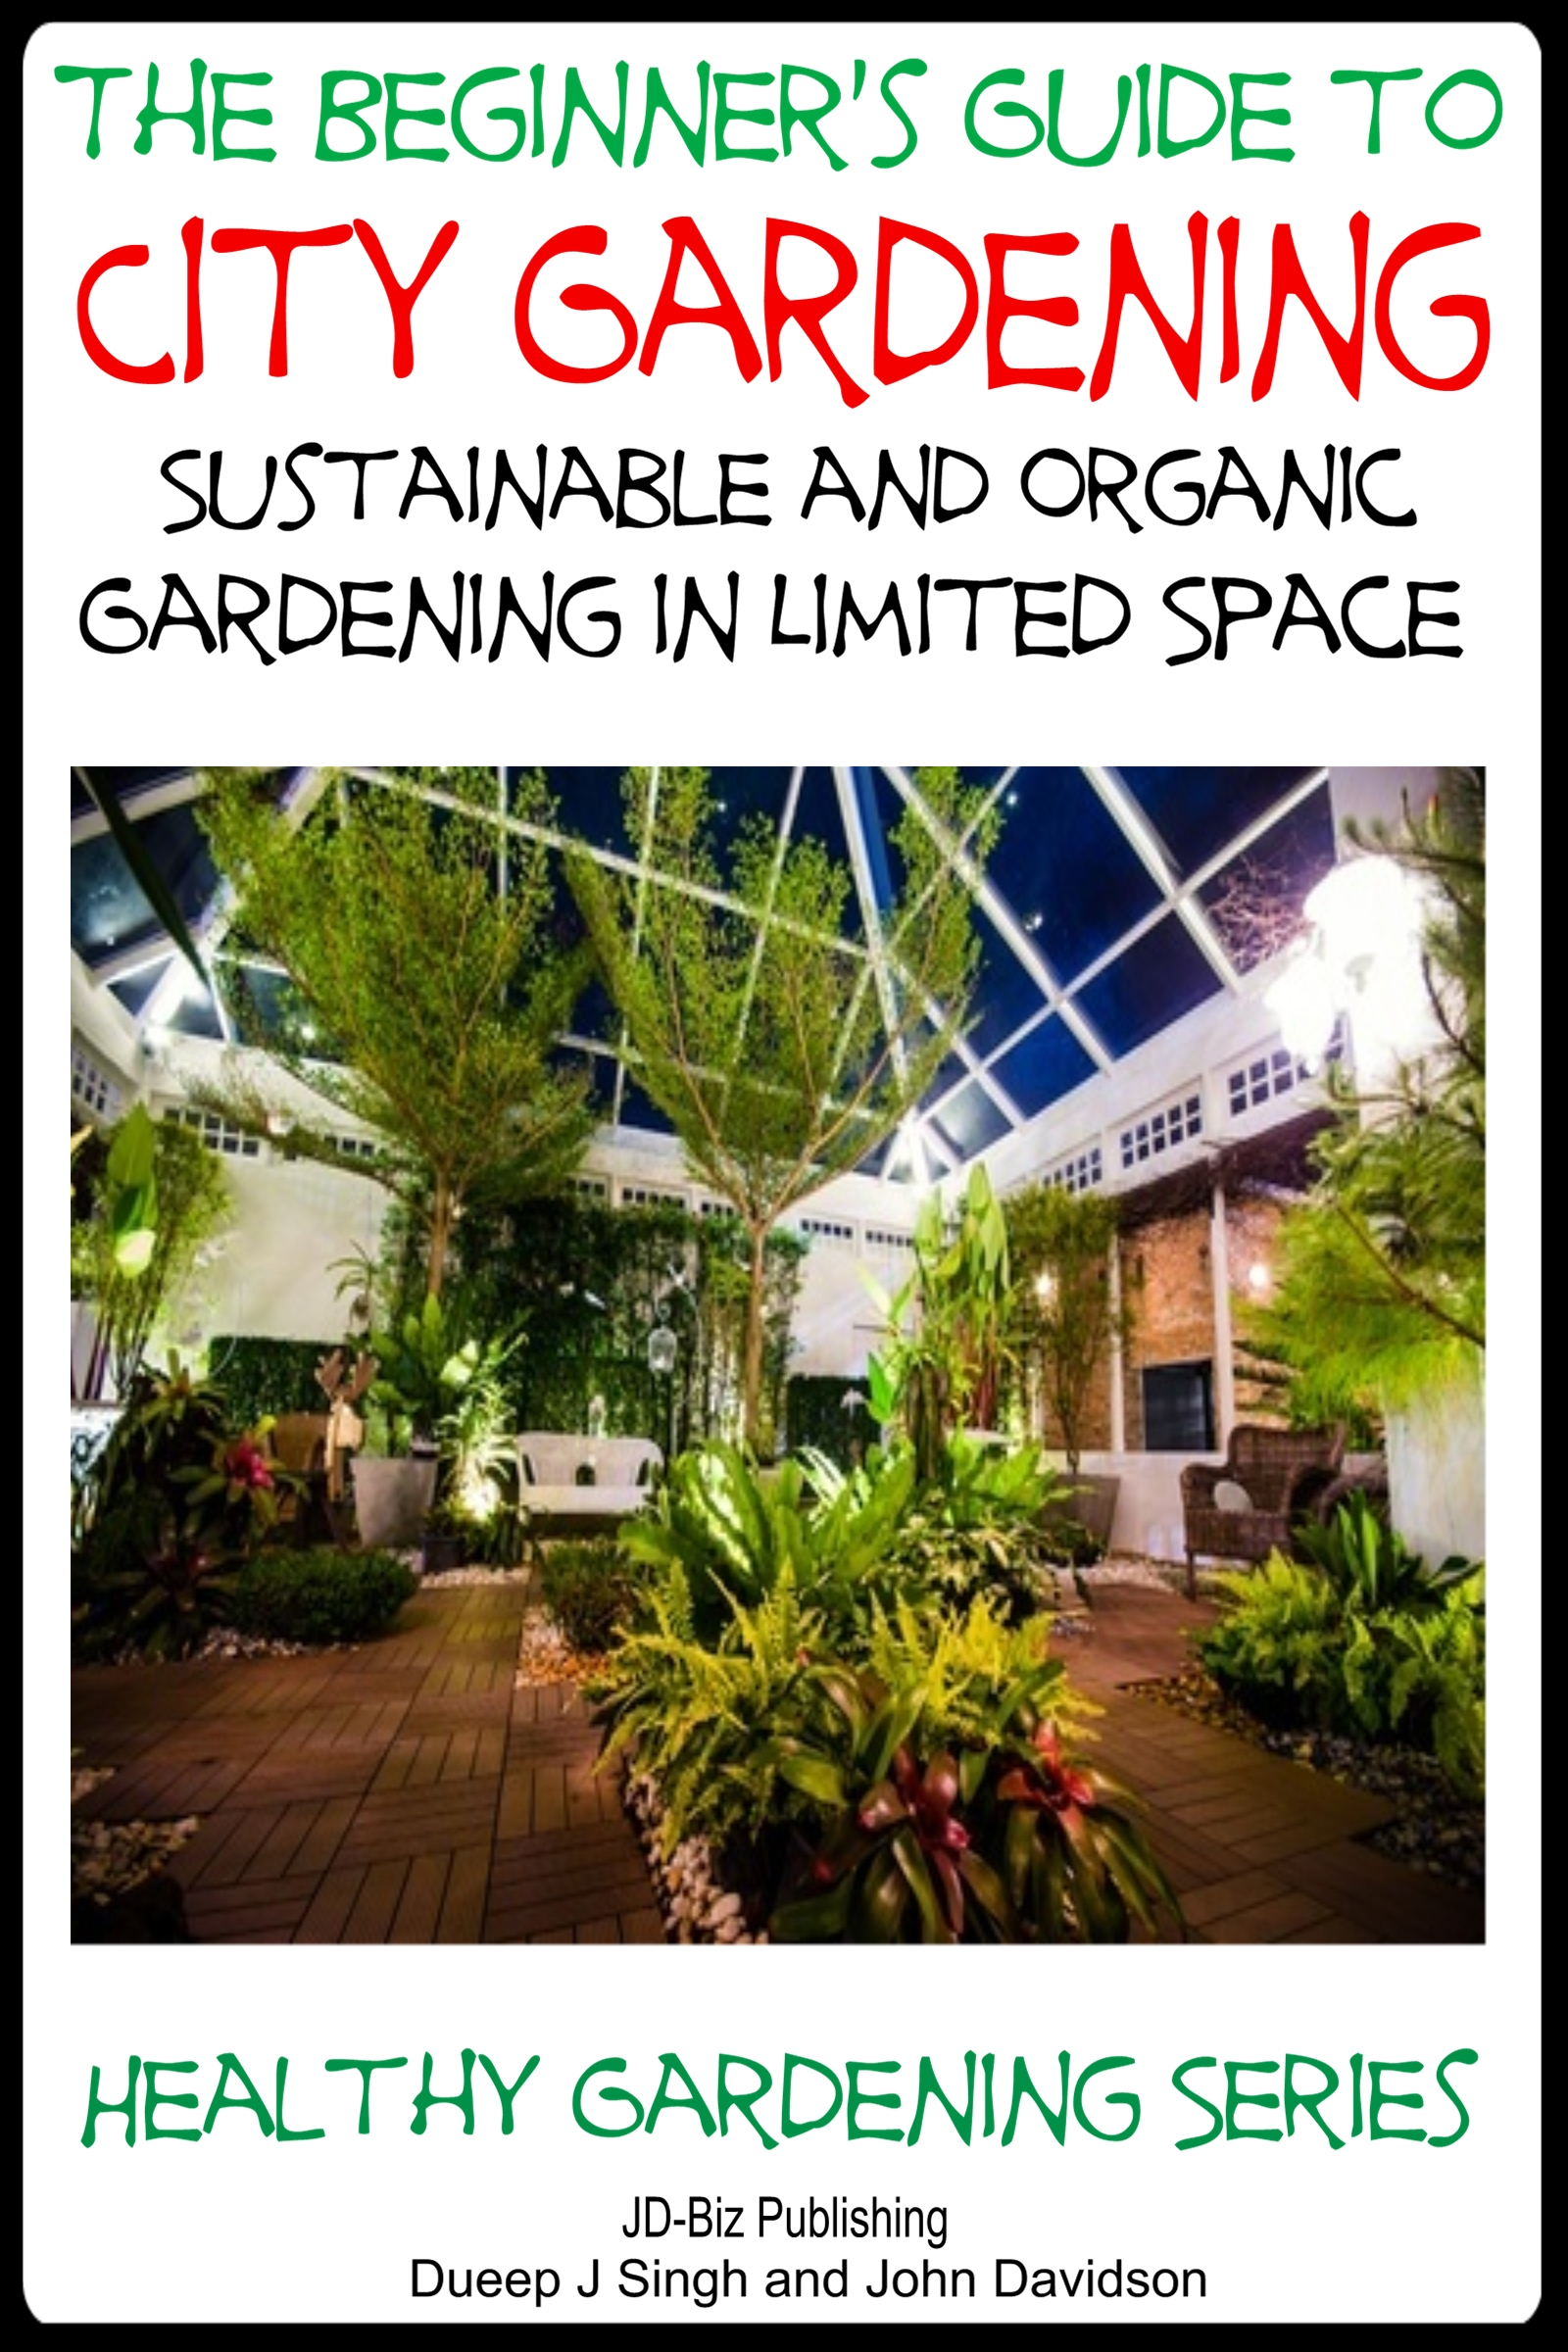 A Beginneru0027s Guide To City Gardening   Sustainable And Organic Gardening In Limited  Space